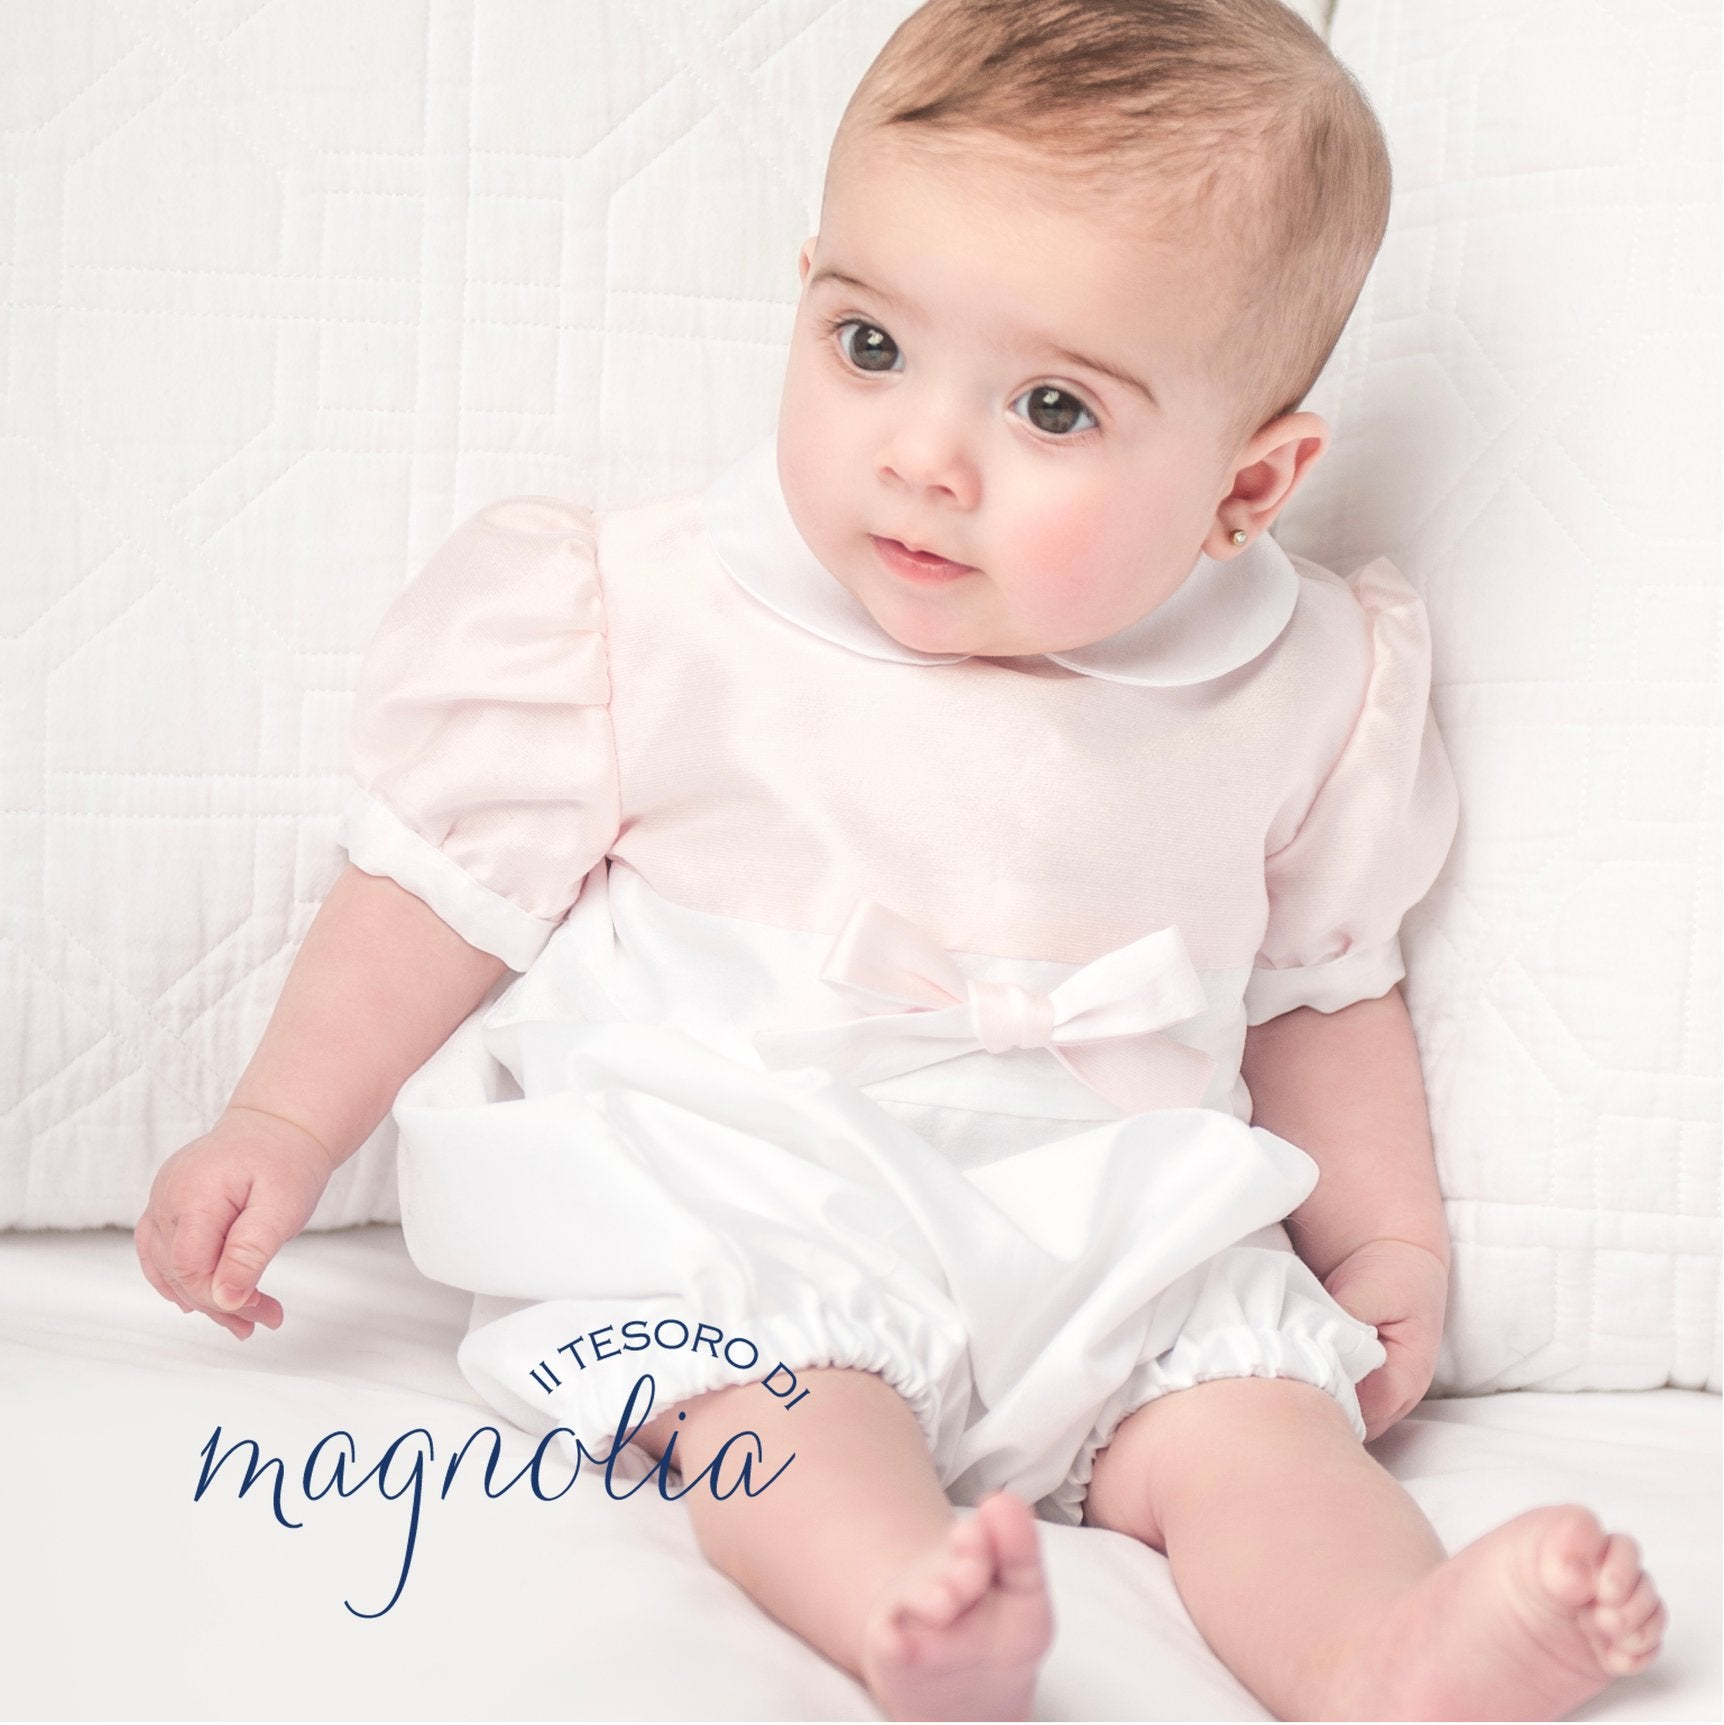 589bd8ce6 Magnolia Baby Layette - Pima Cotton Baby Clothes and Pajamas